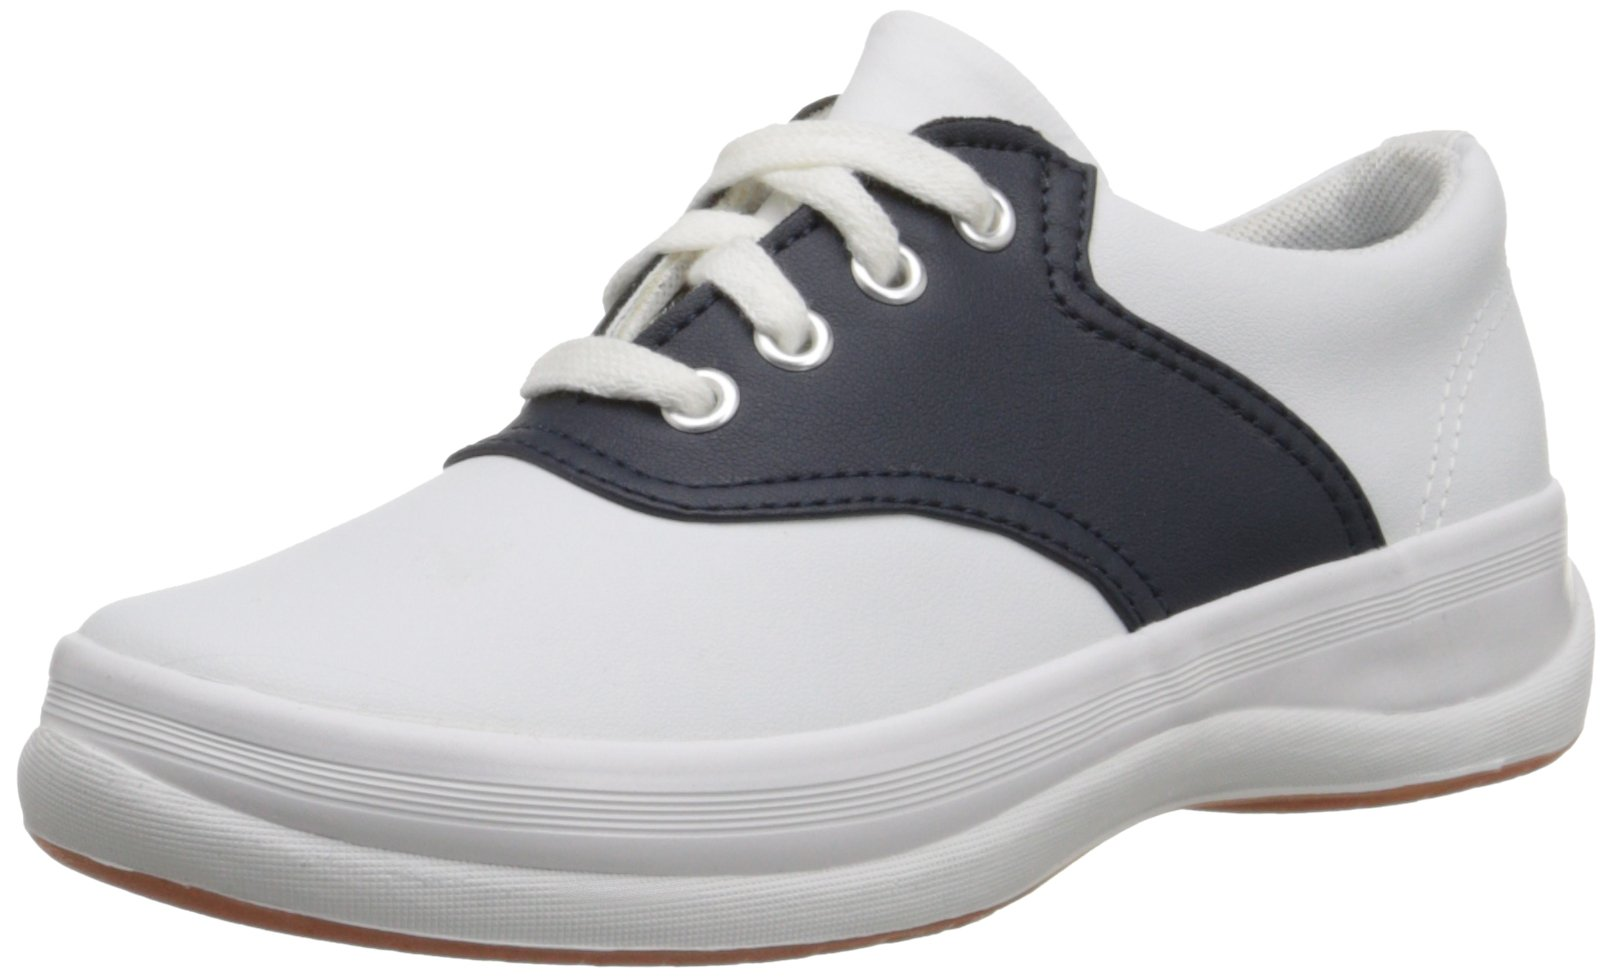 Keds School Days Sneaker Big Kid 1.5 White/Classic Navy